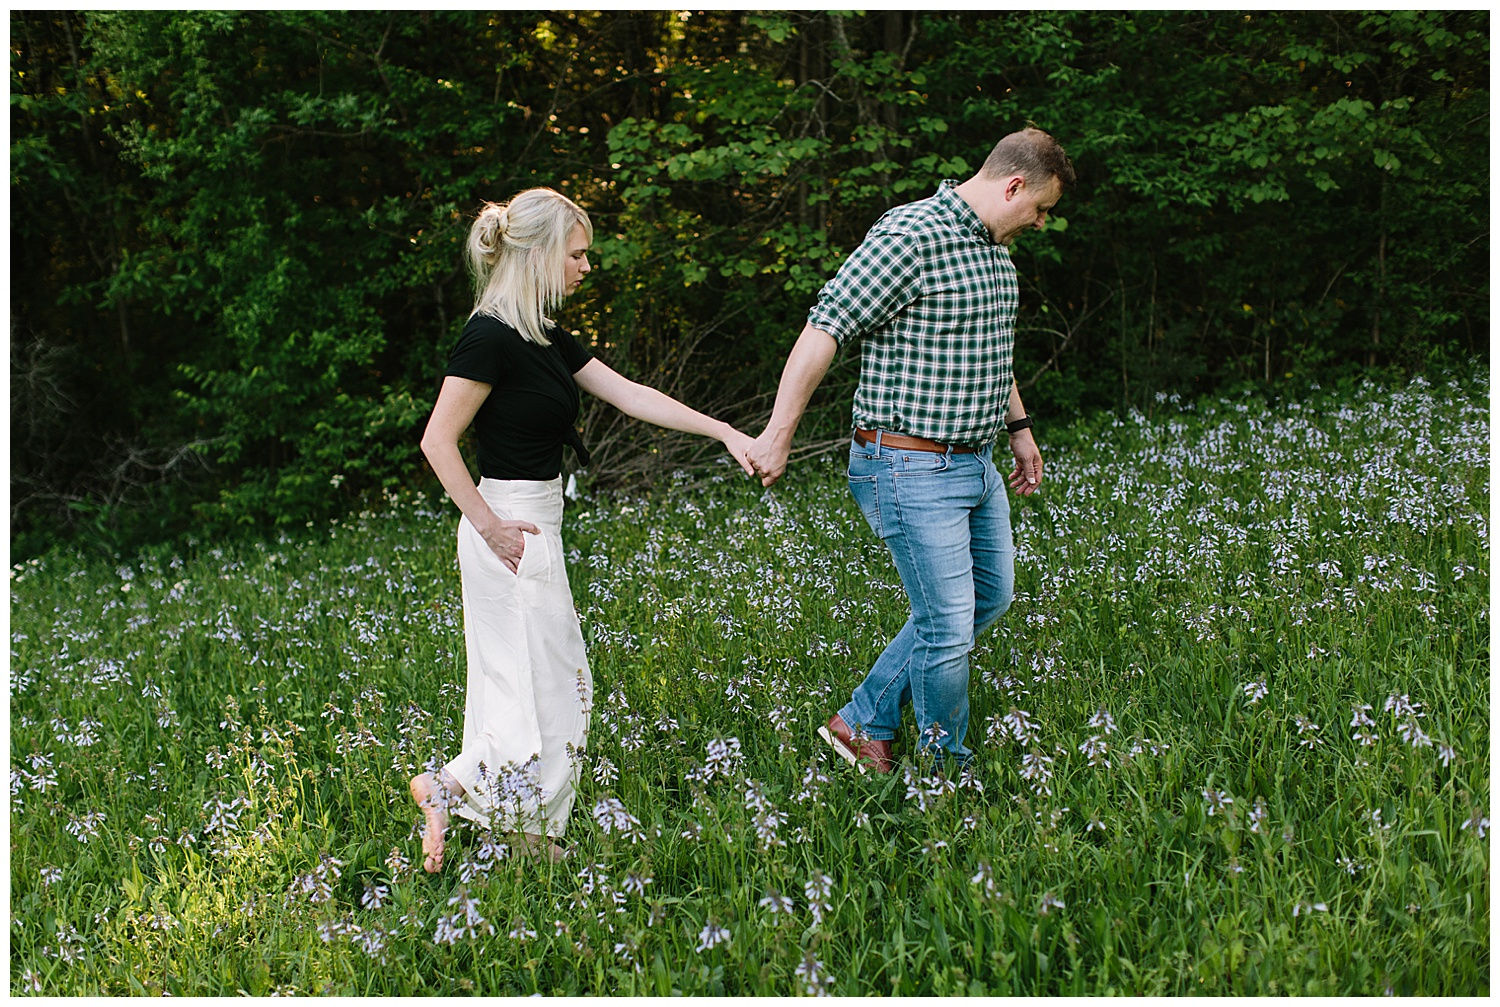 trent.and.kendra.photography.bernheim.forest.photos-30.jpg